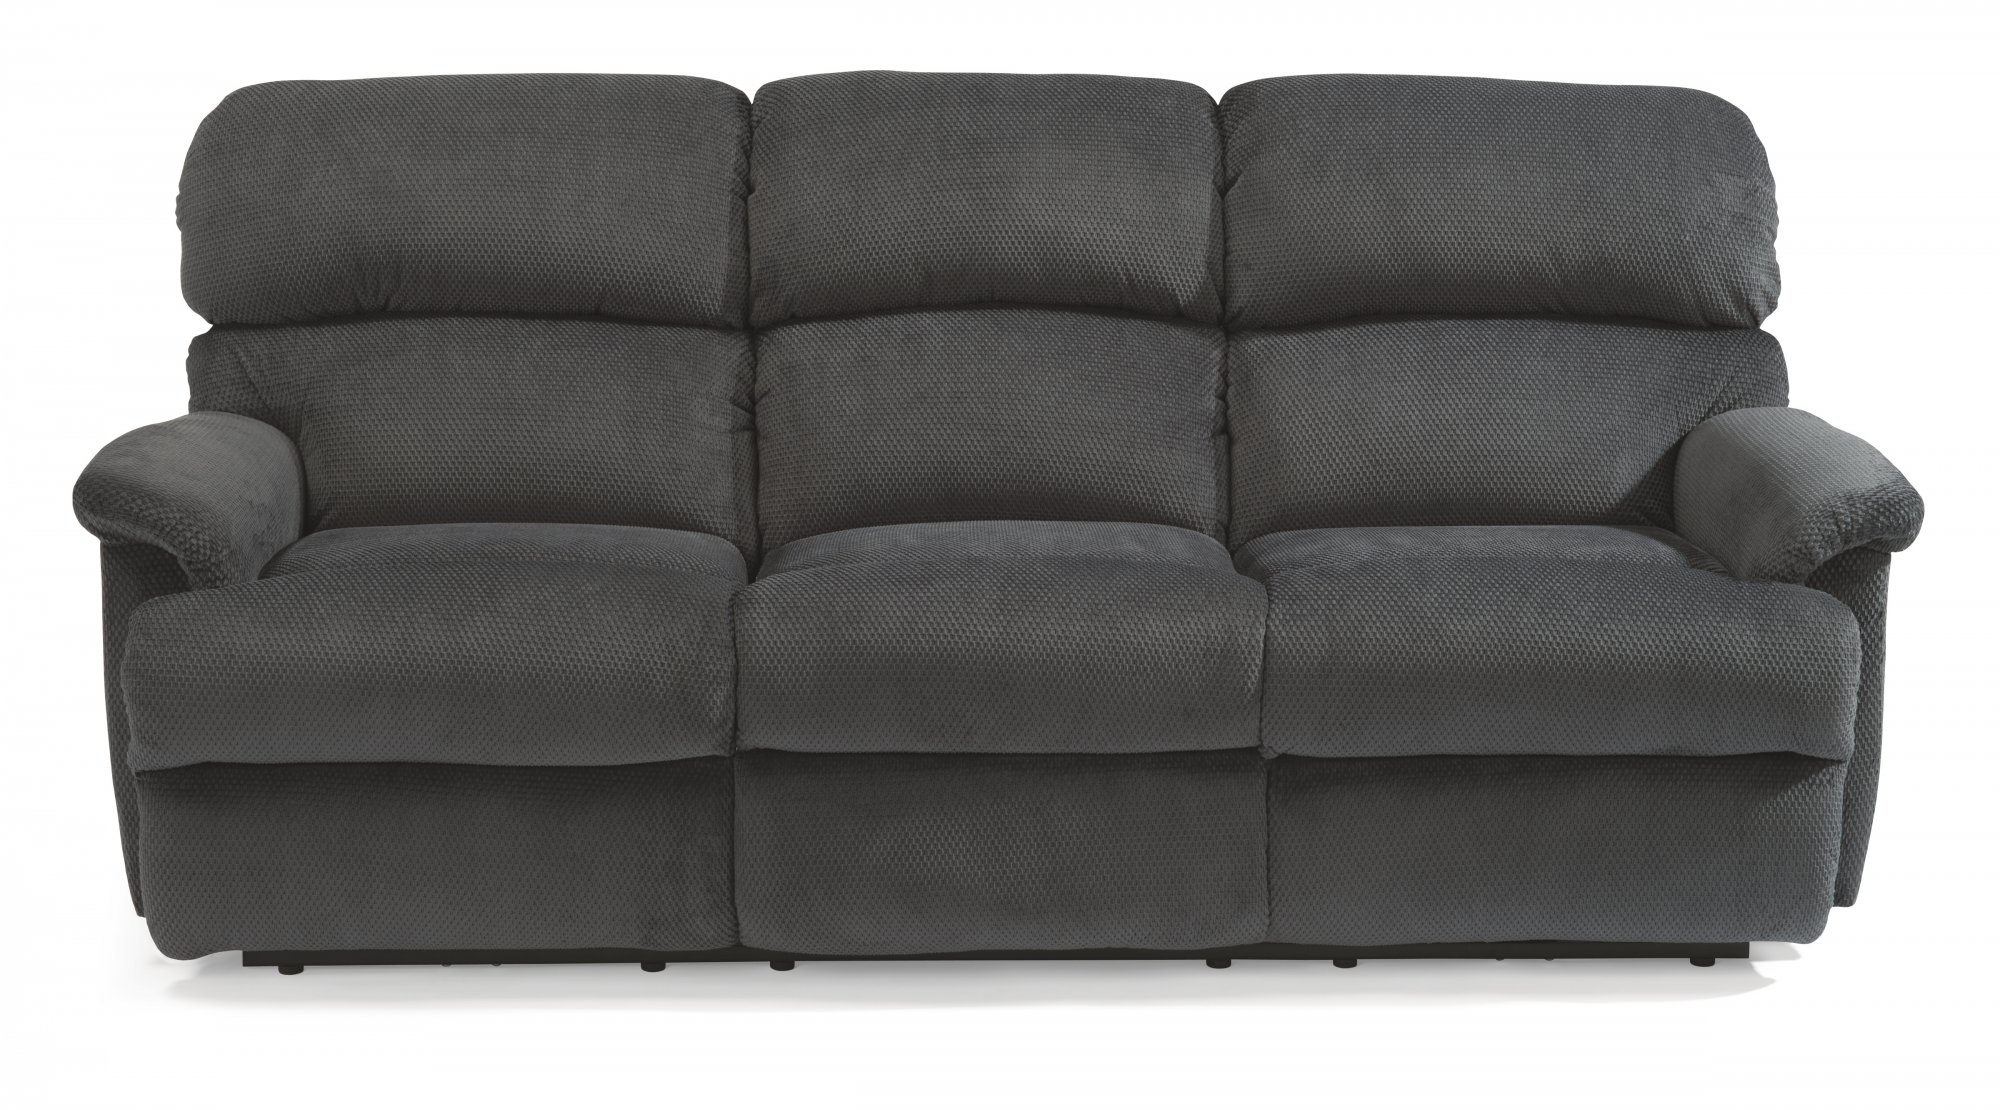 Marvelous Flexsteel 7066 62 Chicago Fabric Reclining Sofa Caraccident5 Cool Chair Designs And Ideas Caraccident5Info